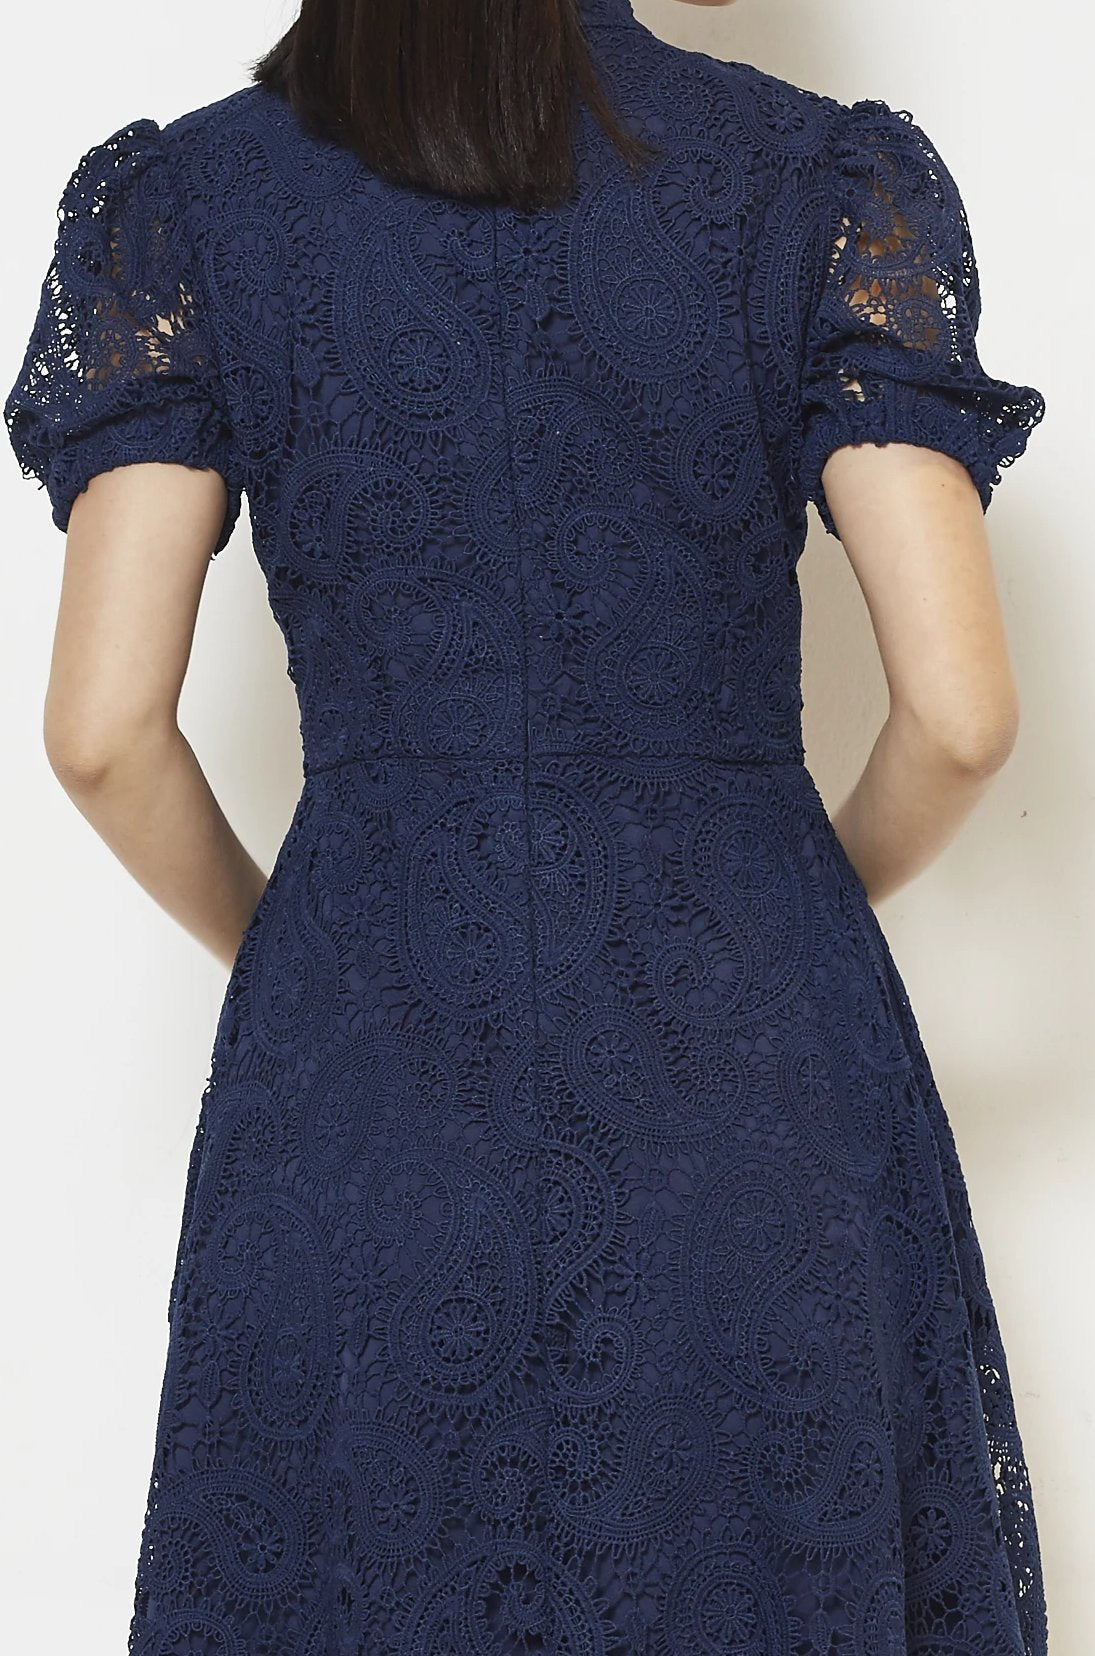 Lace Qipao Dress